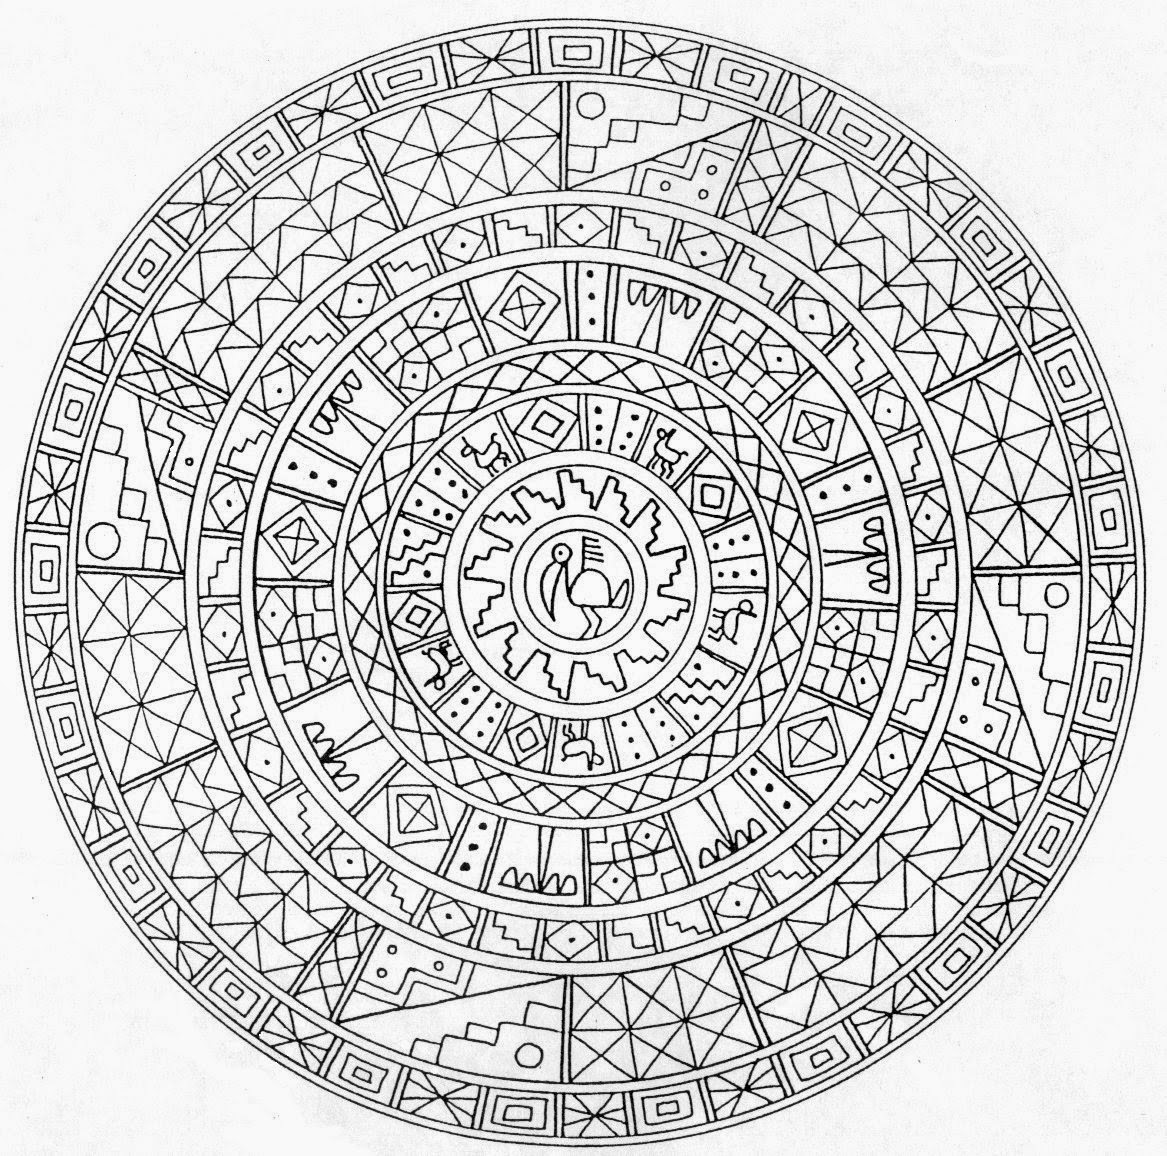 detailed mandala coloring pages coloring pages difficult but fun coloring pages mandala mandala coloring detailed pages